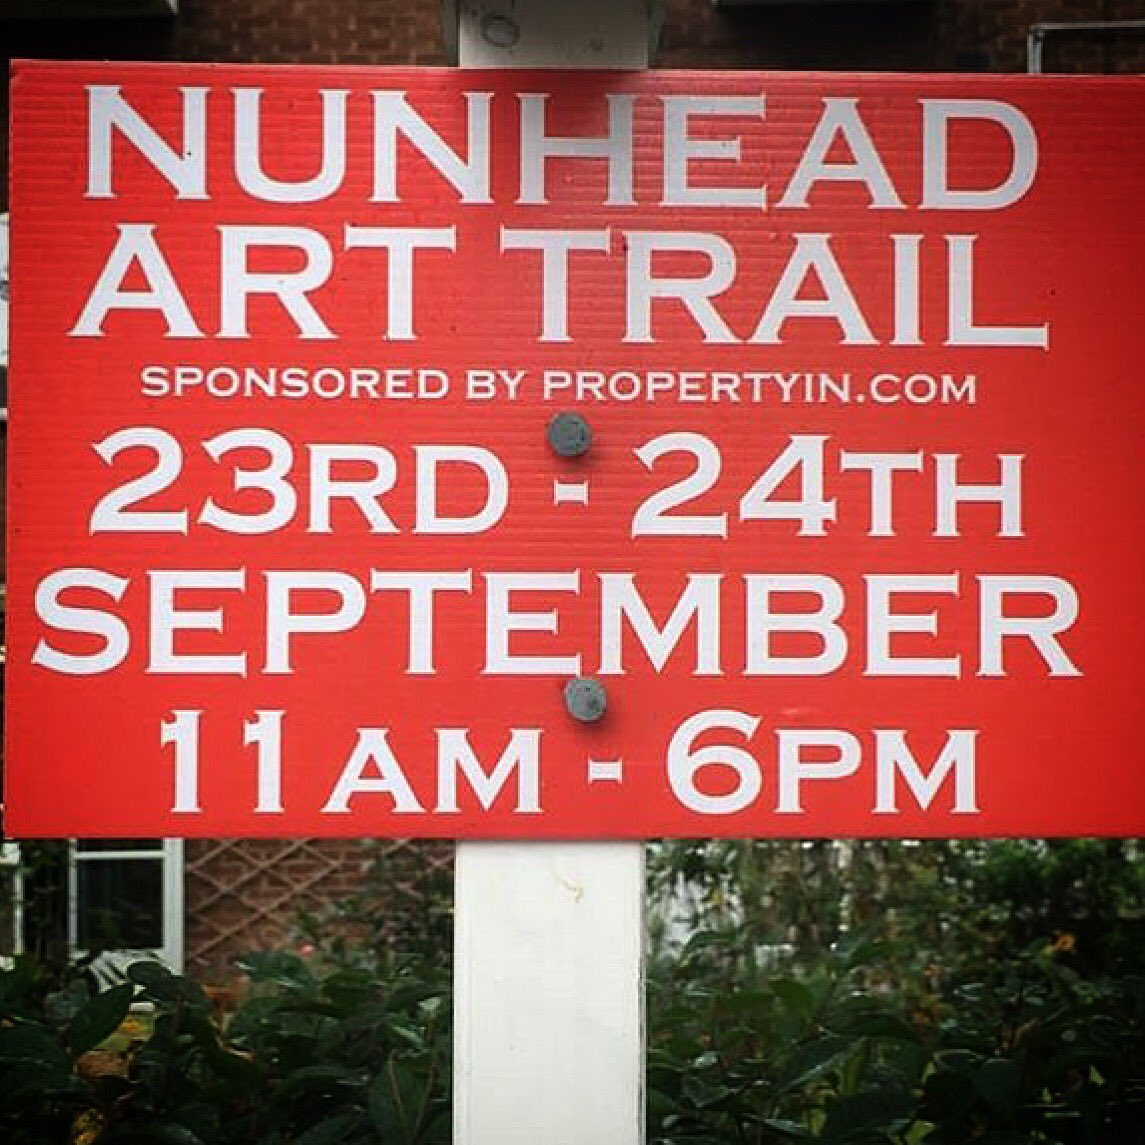 Another day of #nunheadarttrail with #art #craft #music #performance <br>http://pic.twitter.com/2jFTRFrLeo